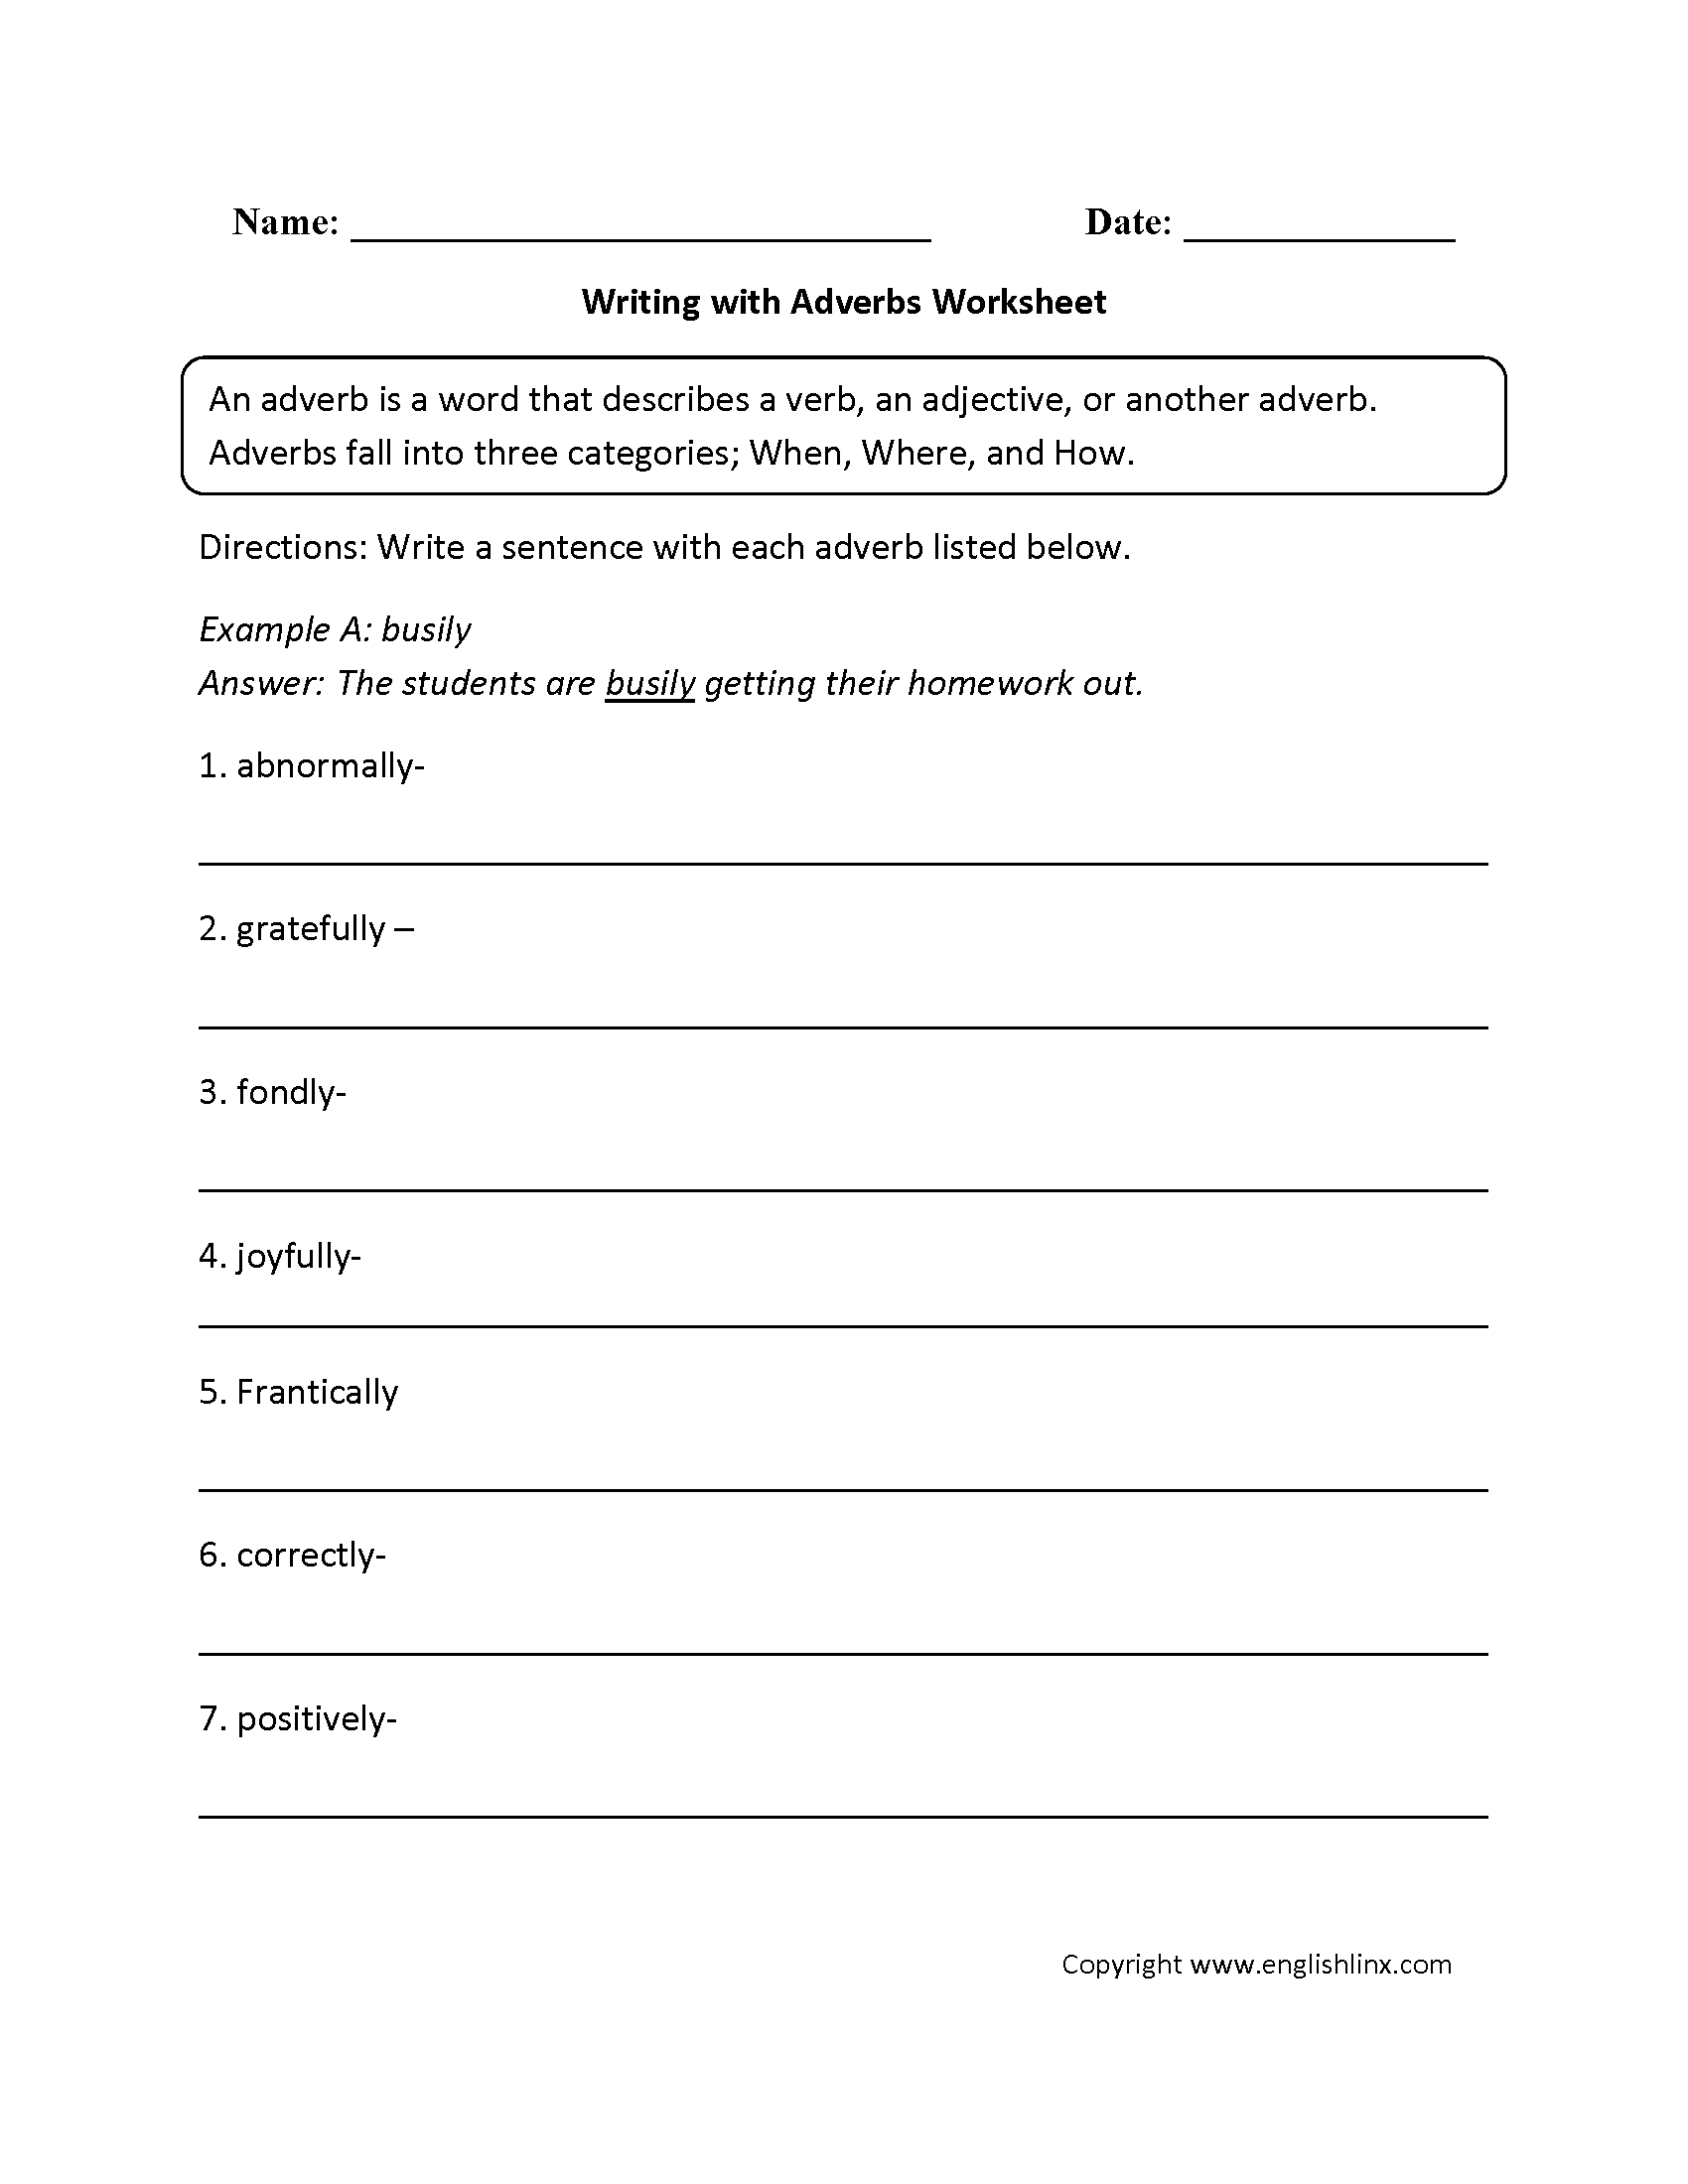 Writing With Adverbs Worksheet